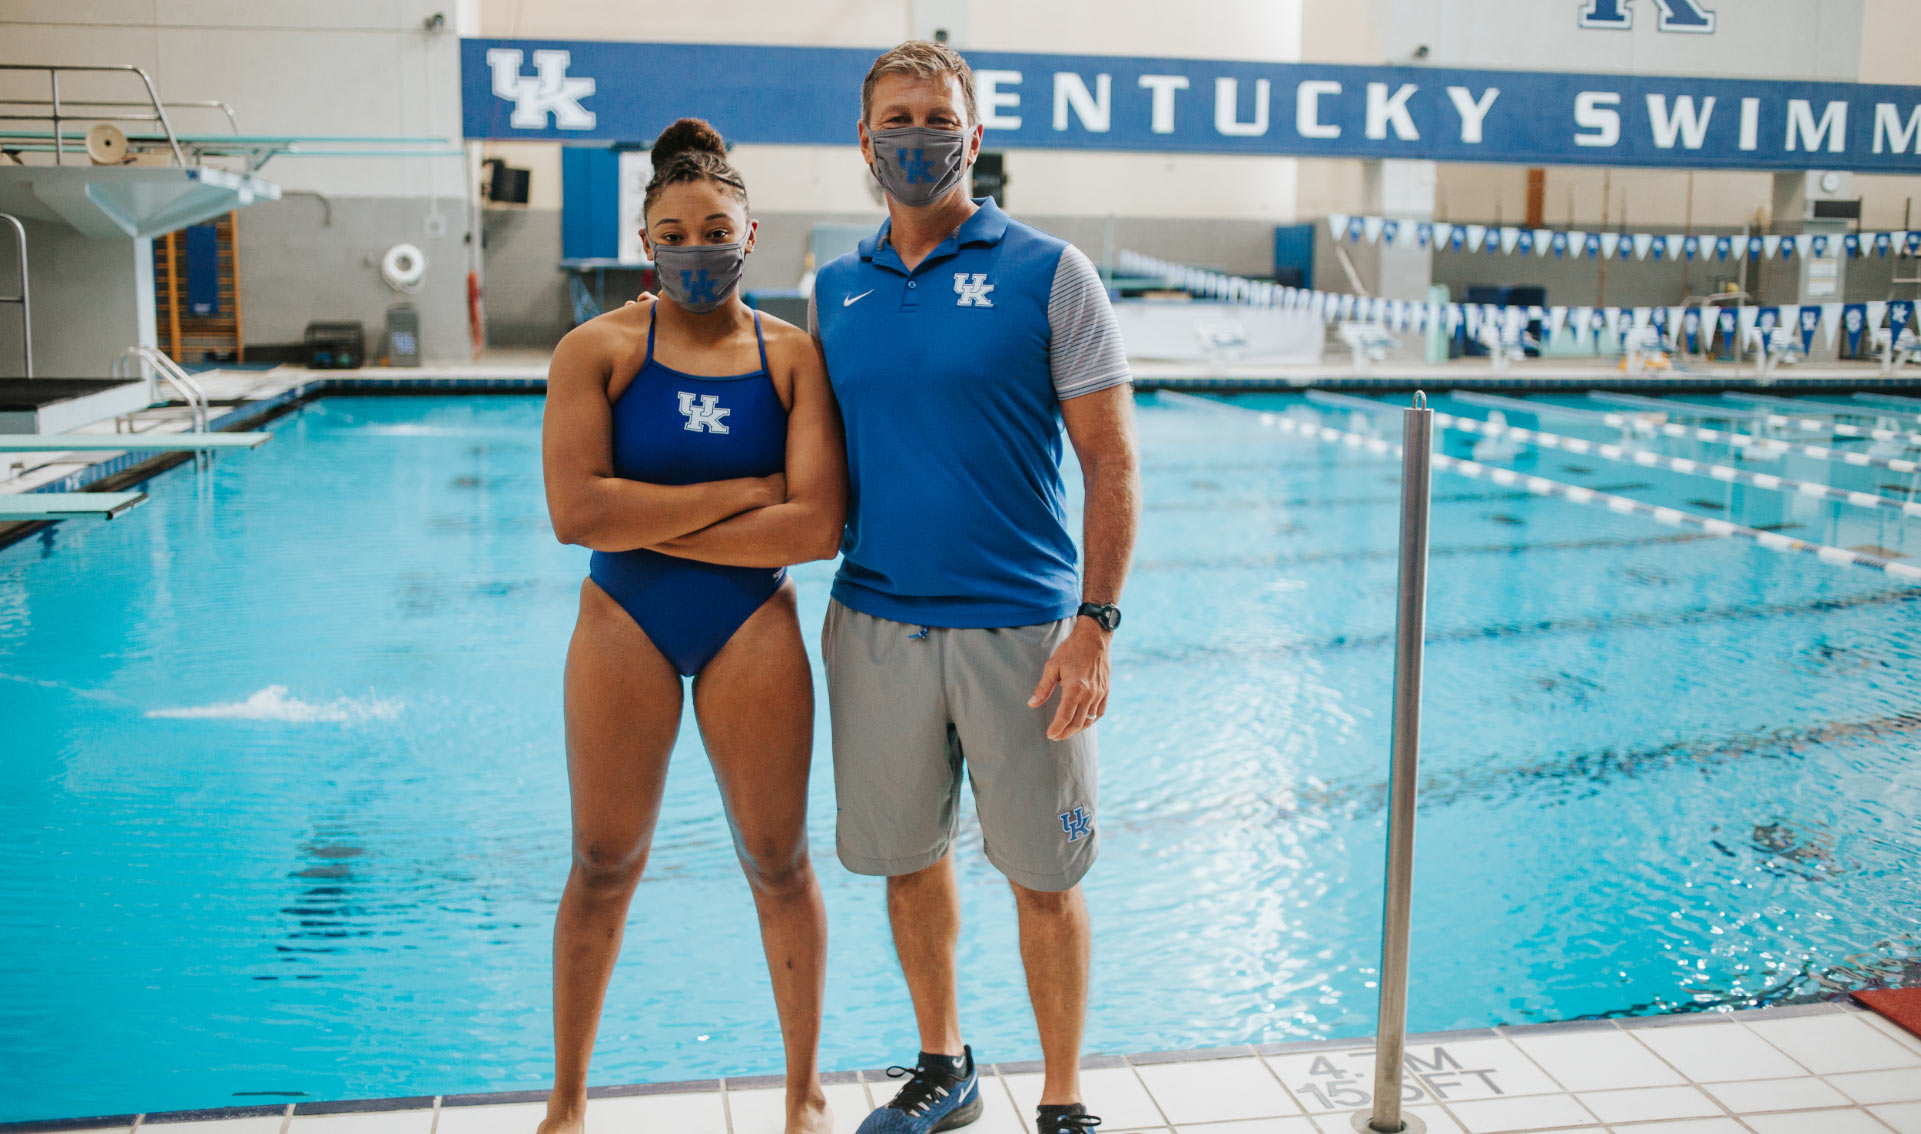 Jaida poses for a photo on the side of the pool with her coach, Ted Hautau, a middle aged man with blonde hair wearing a blue University of Kentucky polo and khaki shorts. Both are wearing masks.